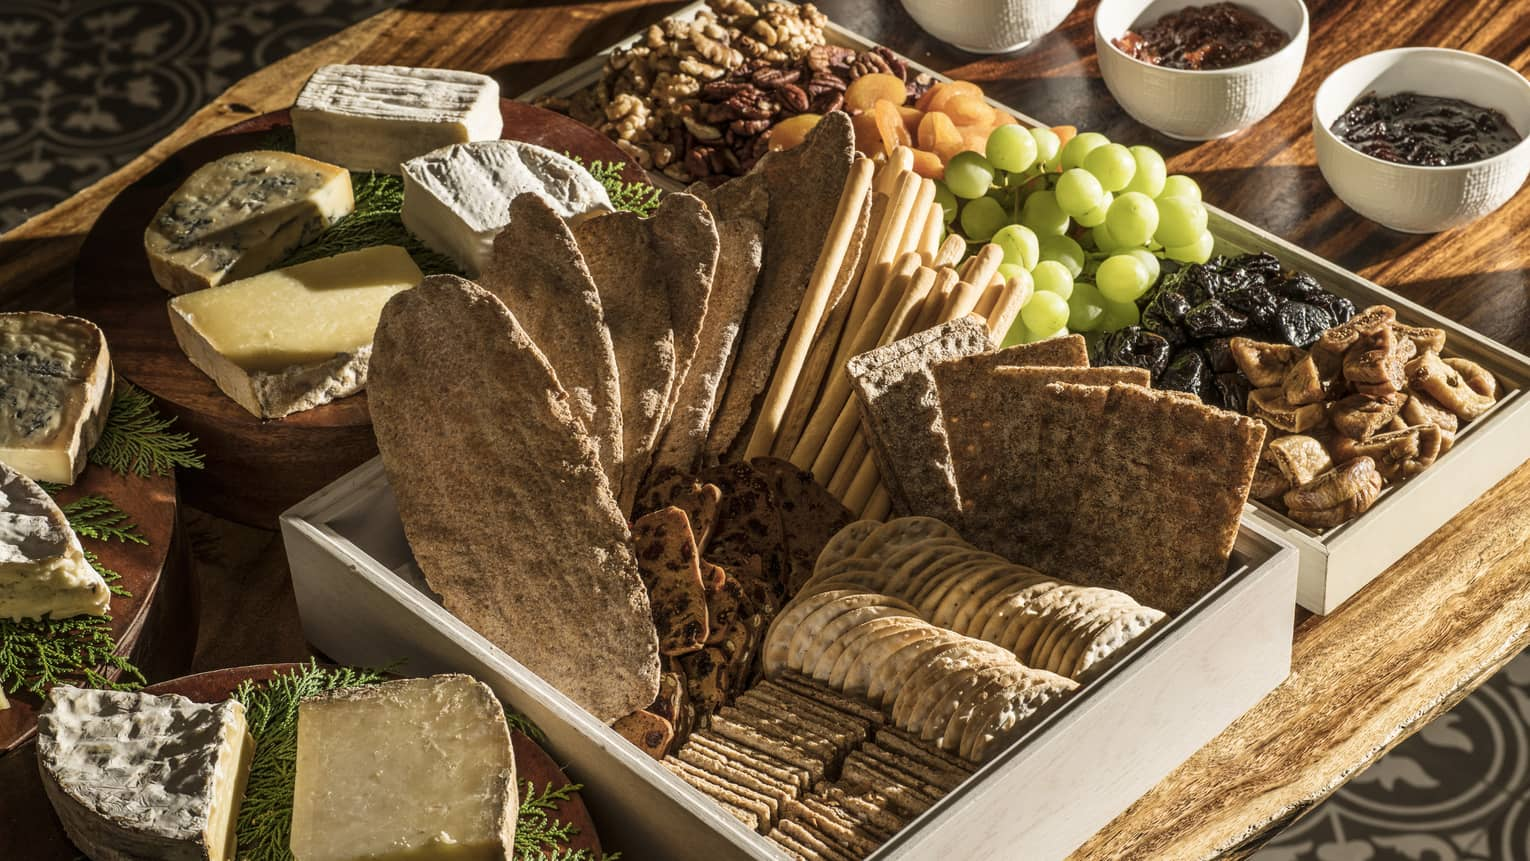 A charcuterie board with crackers and bread, a variety of cheeses, fresh and dried fruit, jams and nuts